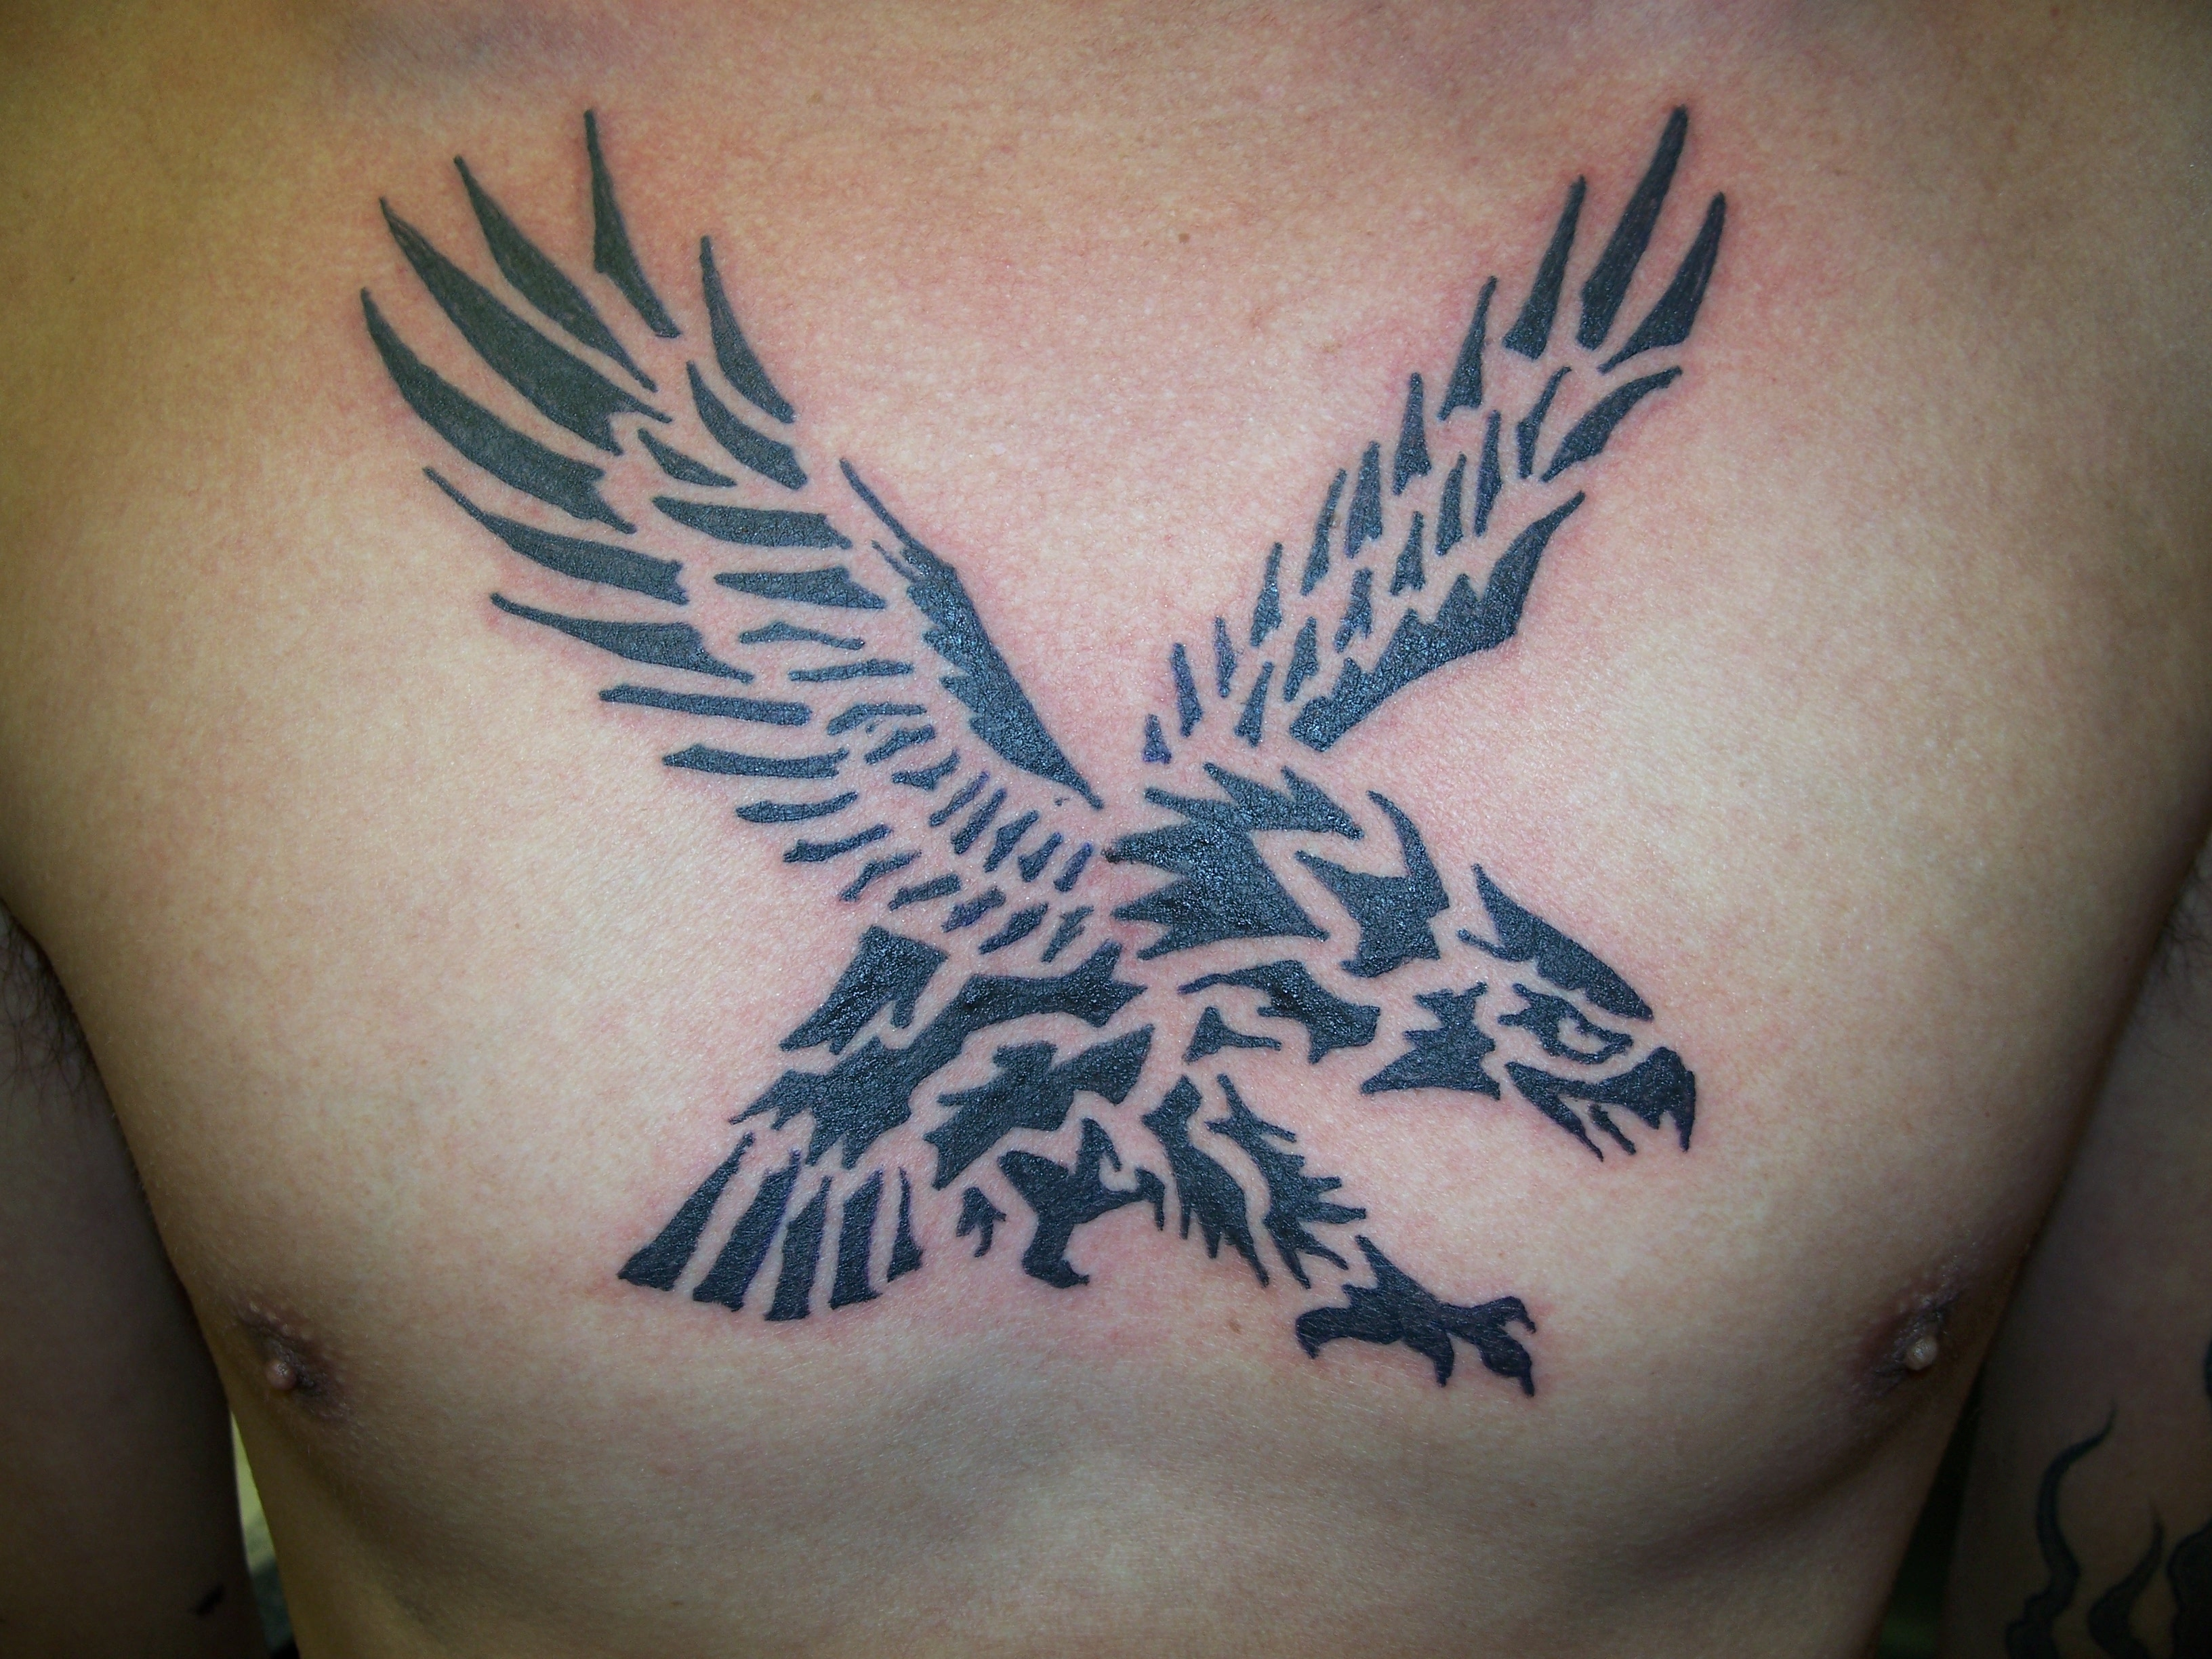 http://upload.wikimedia.org/wikipedia/commons/0/06/Tribal_eagle_tattoo_by_Keith_Killingsworth.JPG